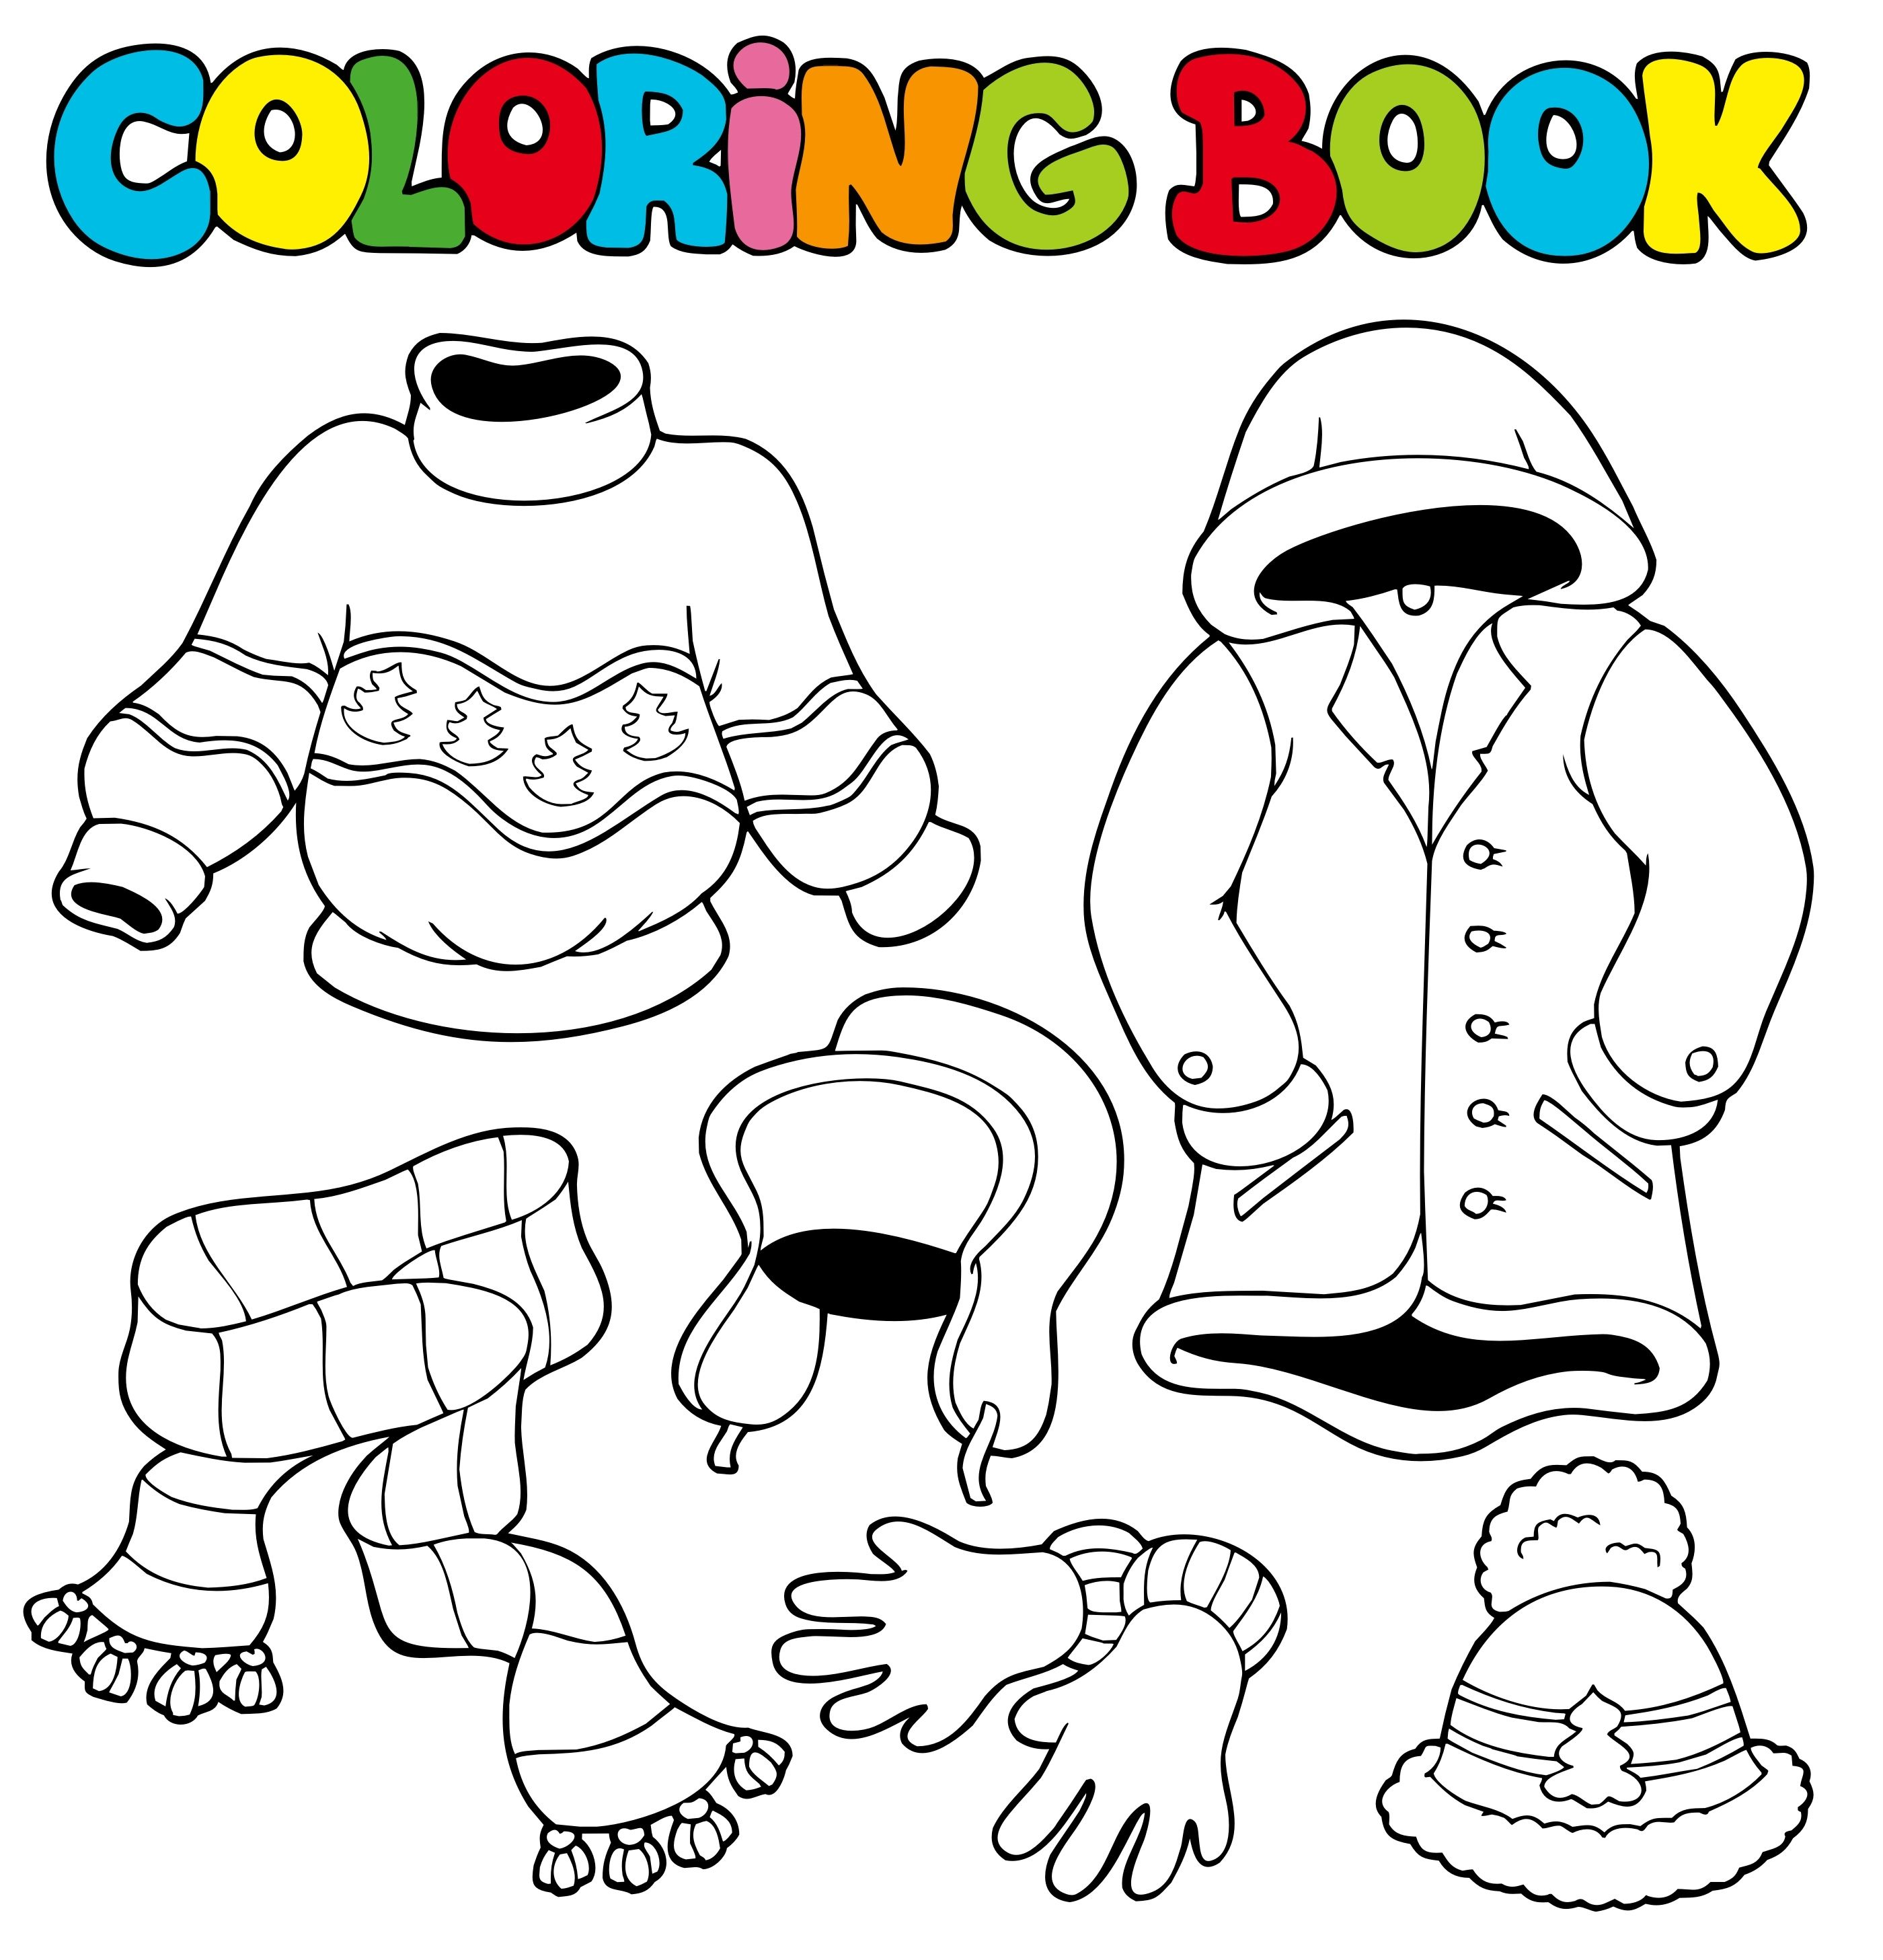 4 Seasons Coloring Pages 187 | Free Printable Coloring ...